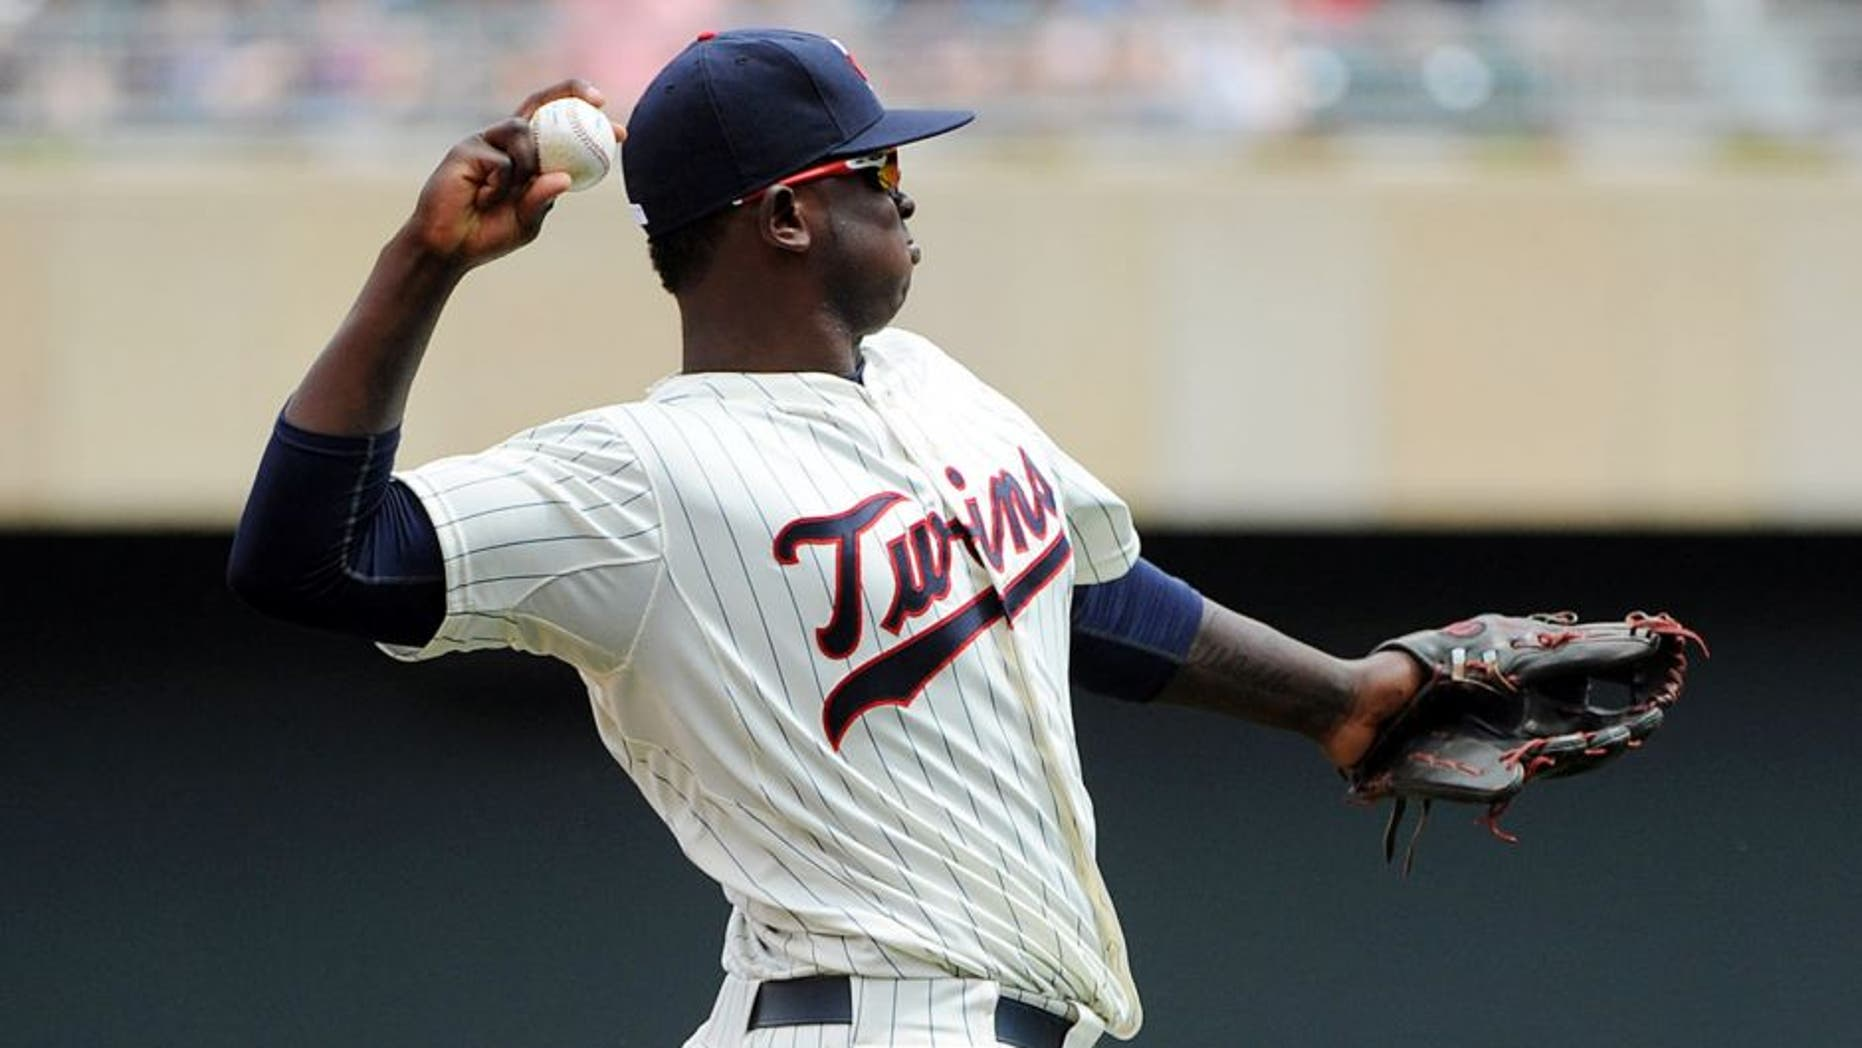 Jul 8, 2015; Minneapolis, MN, USA; Minnesota Twins third baseman Miguel Sano (22) warms up prior to the ninth inning against the Baltimore Orioles at Target Field. The Twins win 5-3 over the Orioles. Mandatory Credit: Marilyn Indahl-USA TODAY Sports